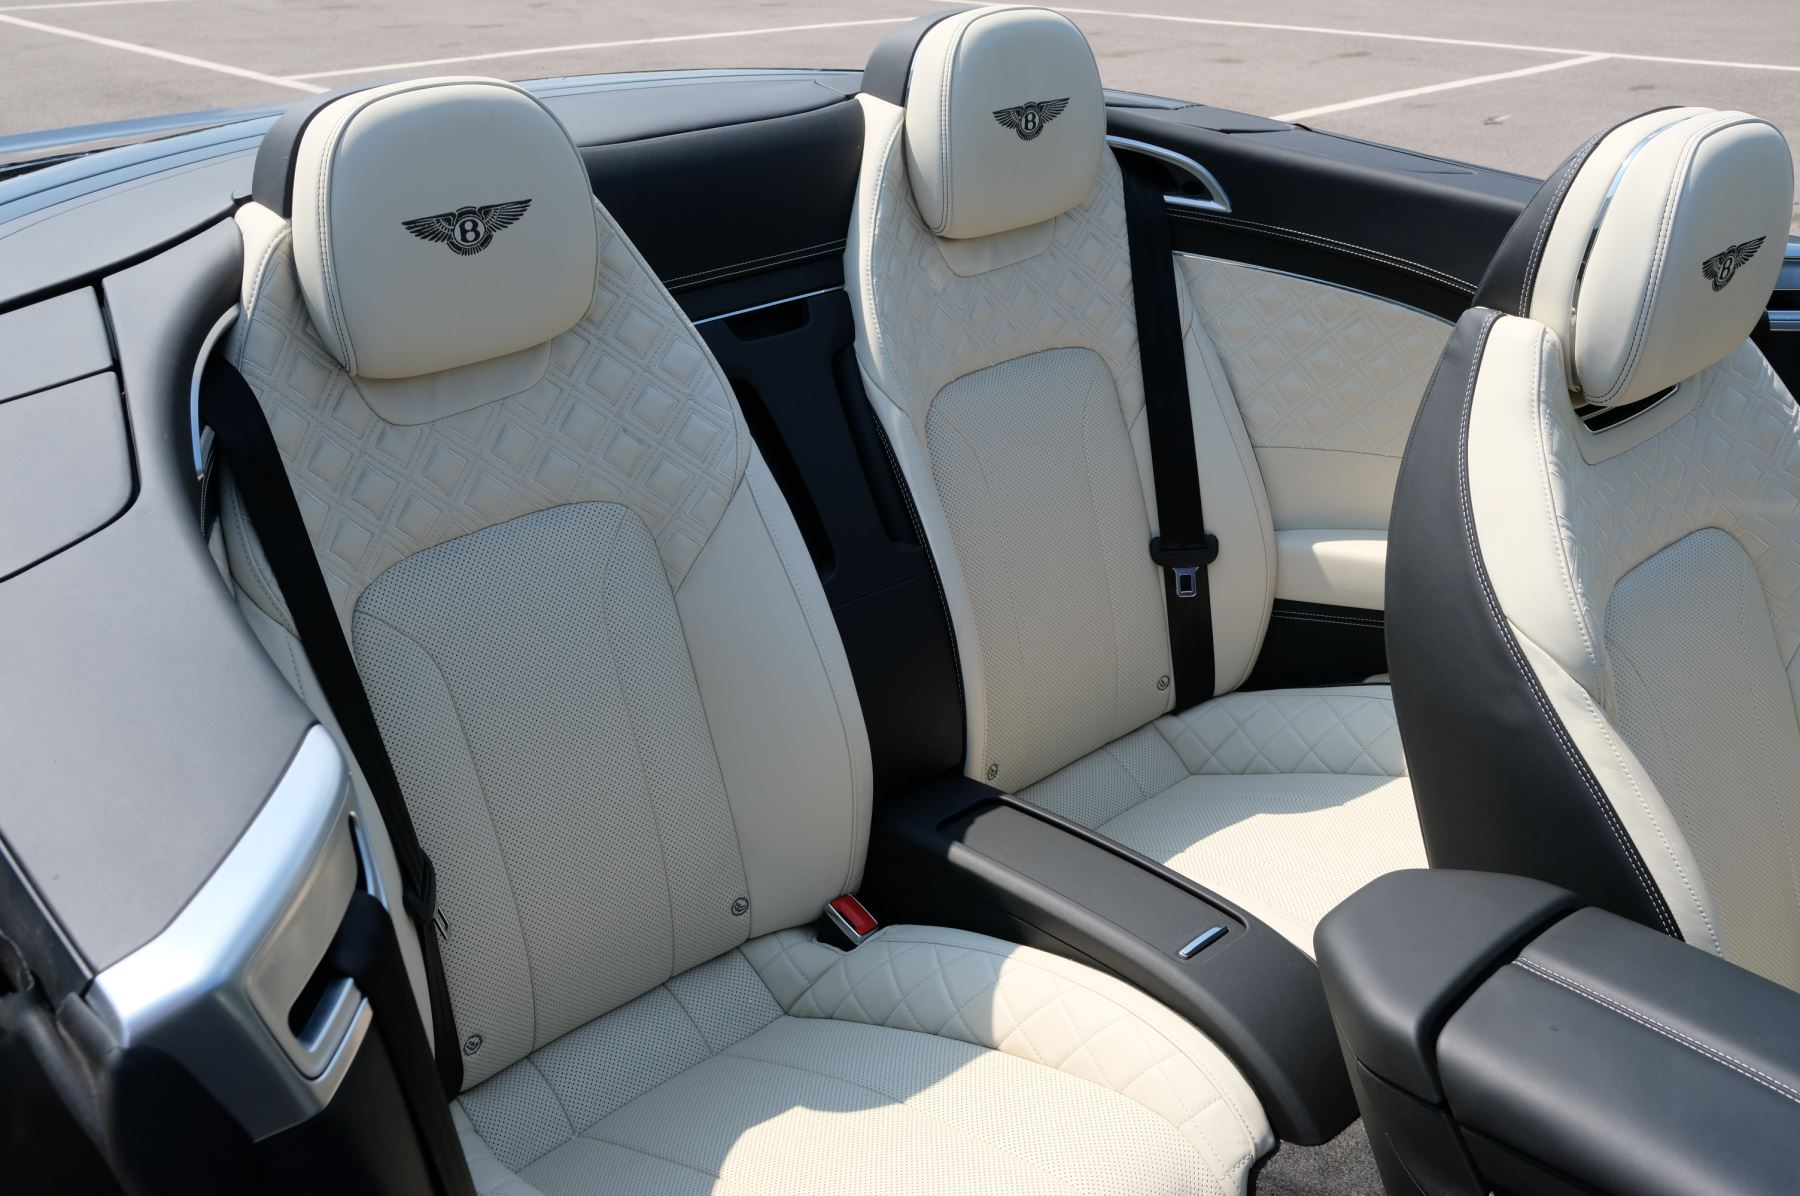 Bentley Continental GTC 6.0 W12 - Mulliner Driving Specification and Centenary Specification image 12